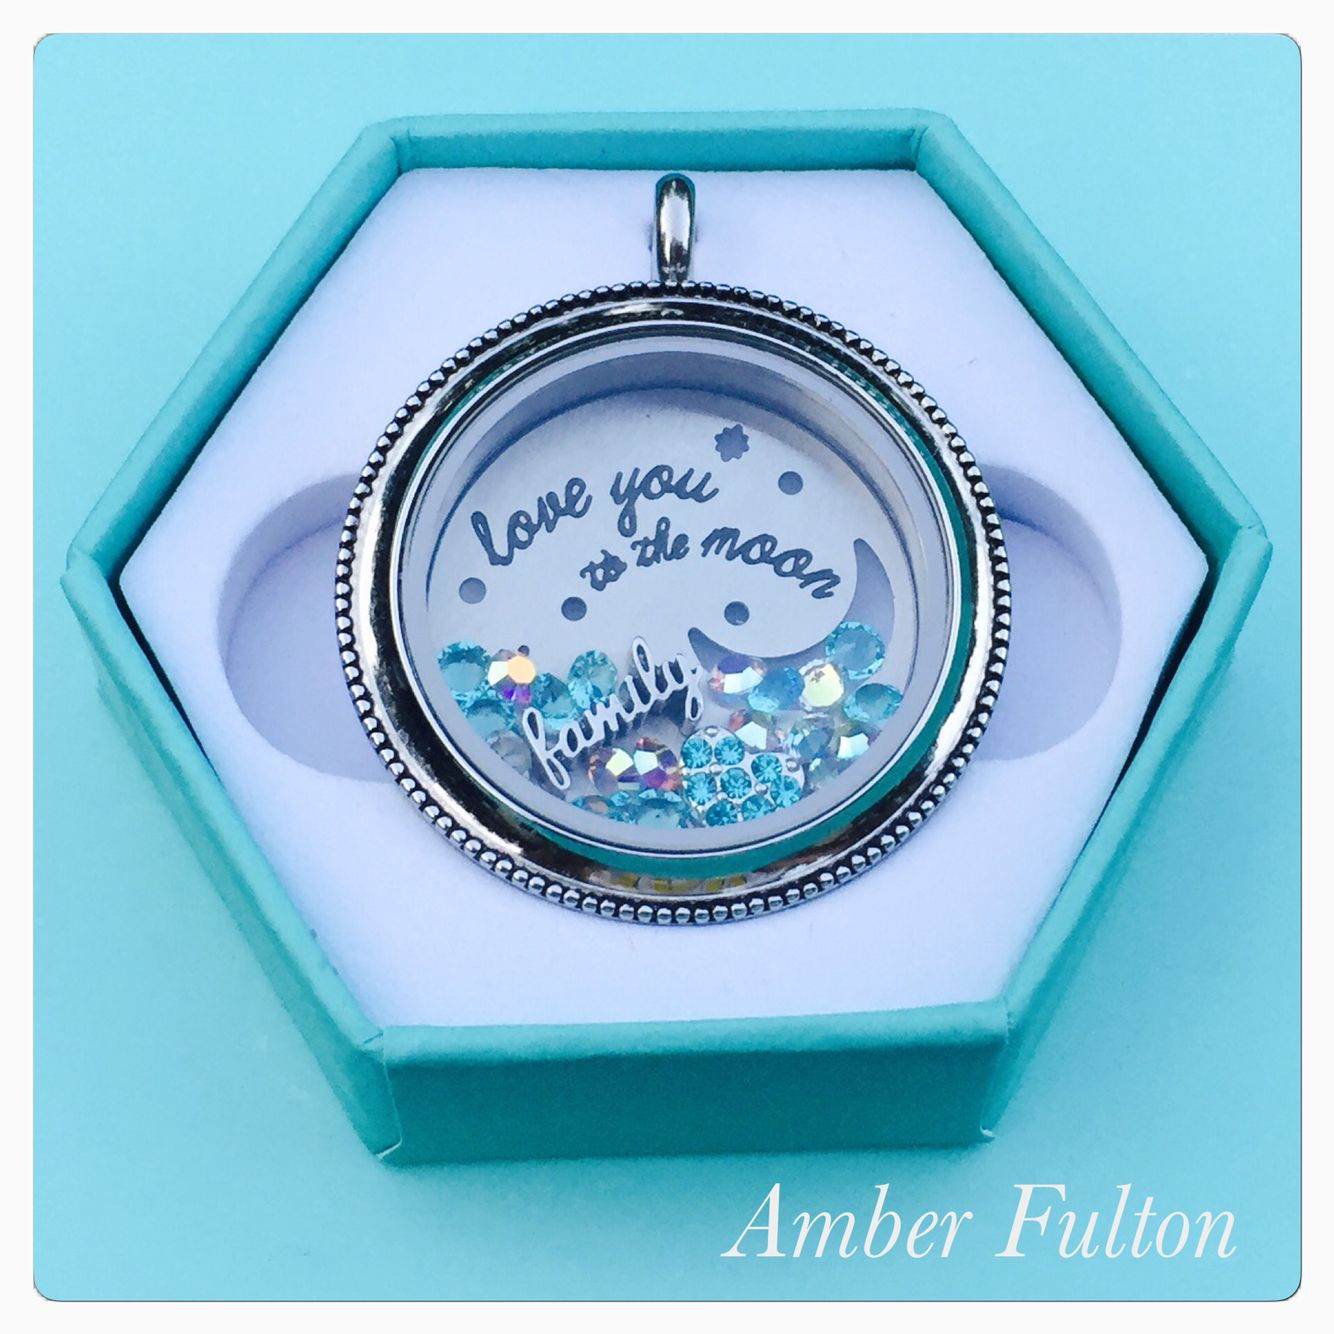 my favorite origami owl plate of all time because i love